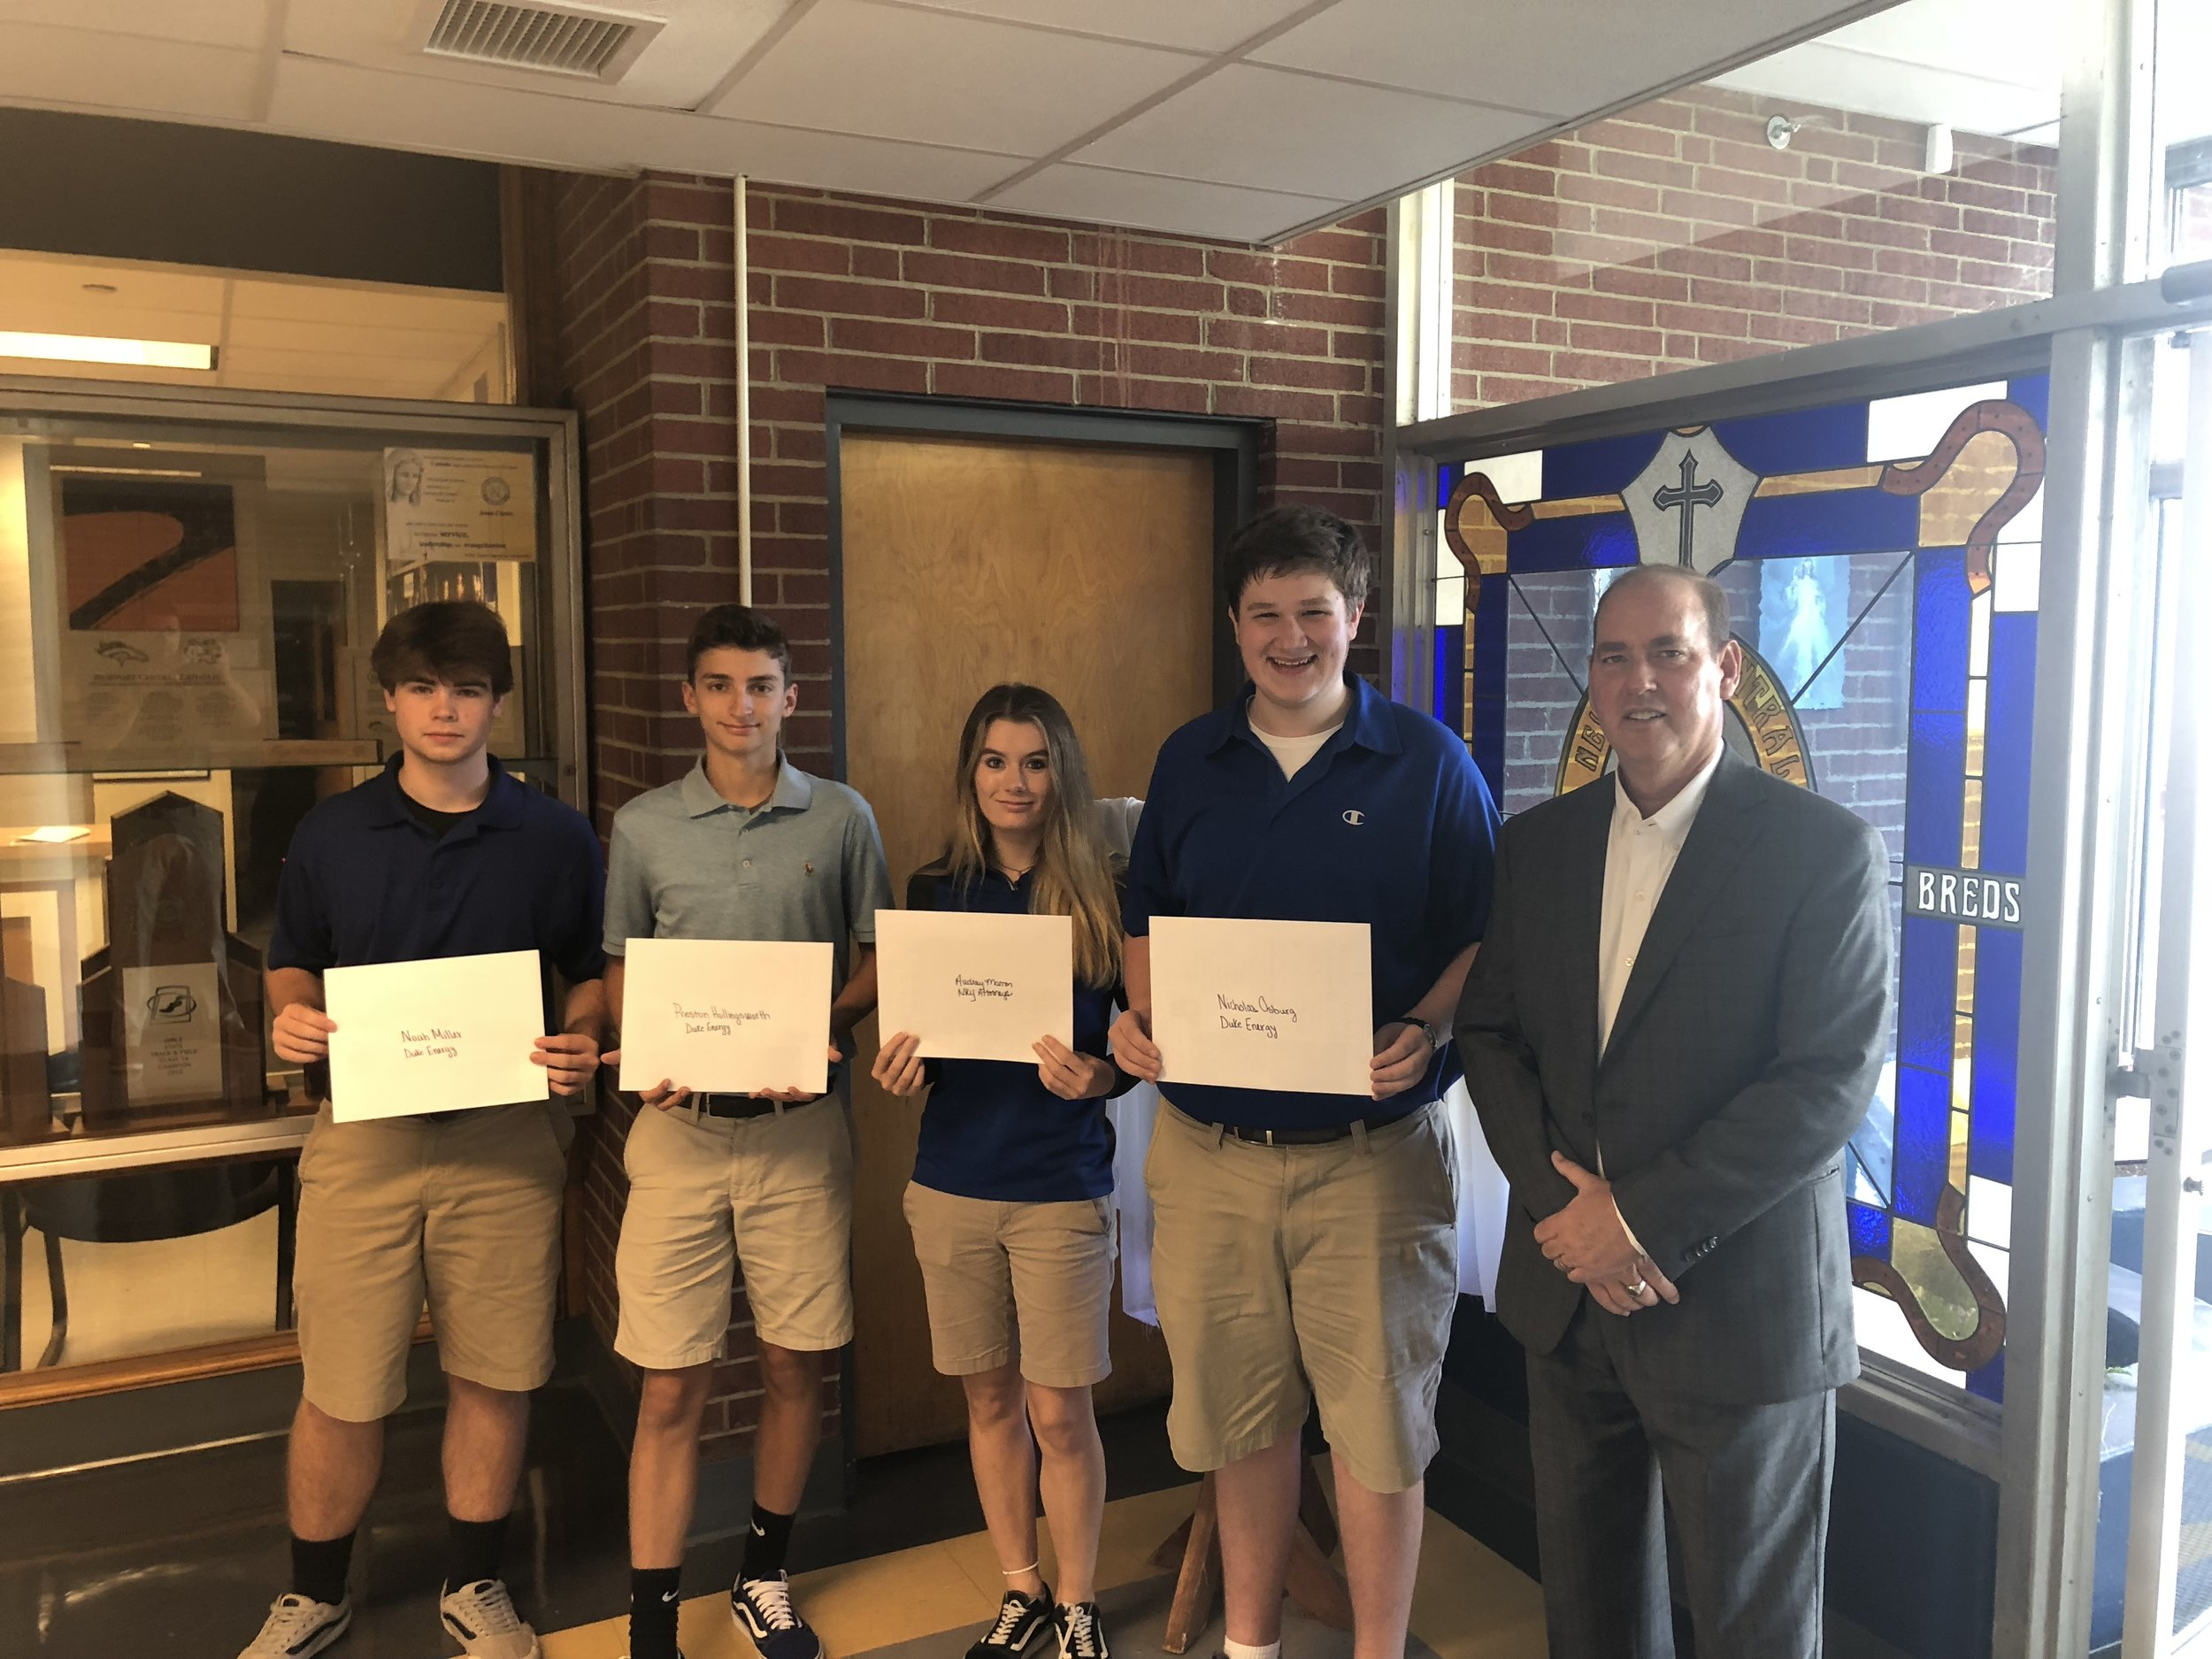 Noah Miller, Preston Hollingsworth, Audrey Marron, and Nick Osburg were notified by Tim Hanner, Founder and Senior Director of NaviGo, of their selection into this highly competitive career prep program.